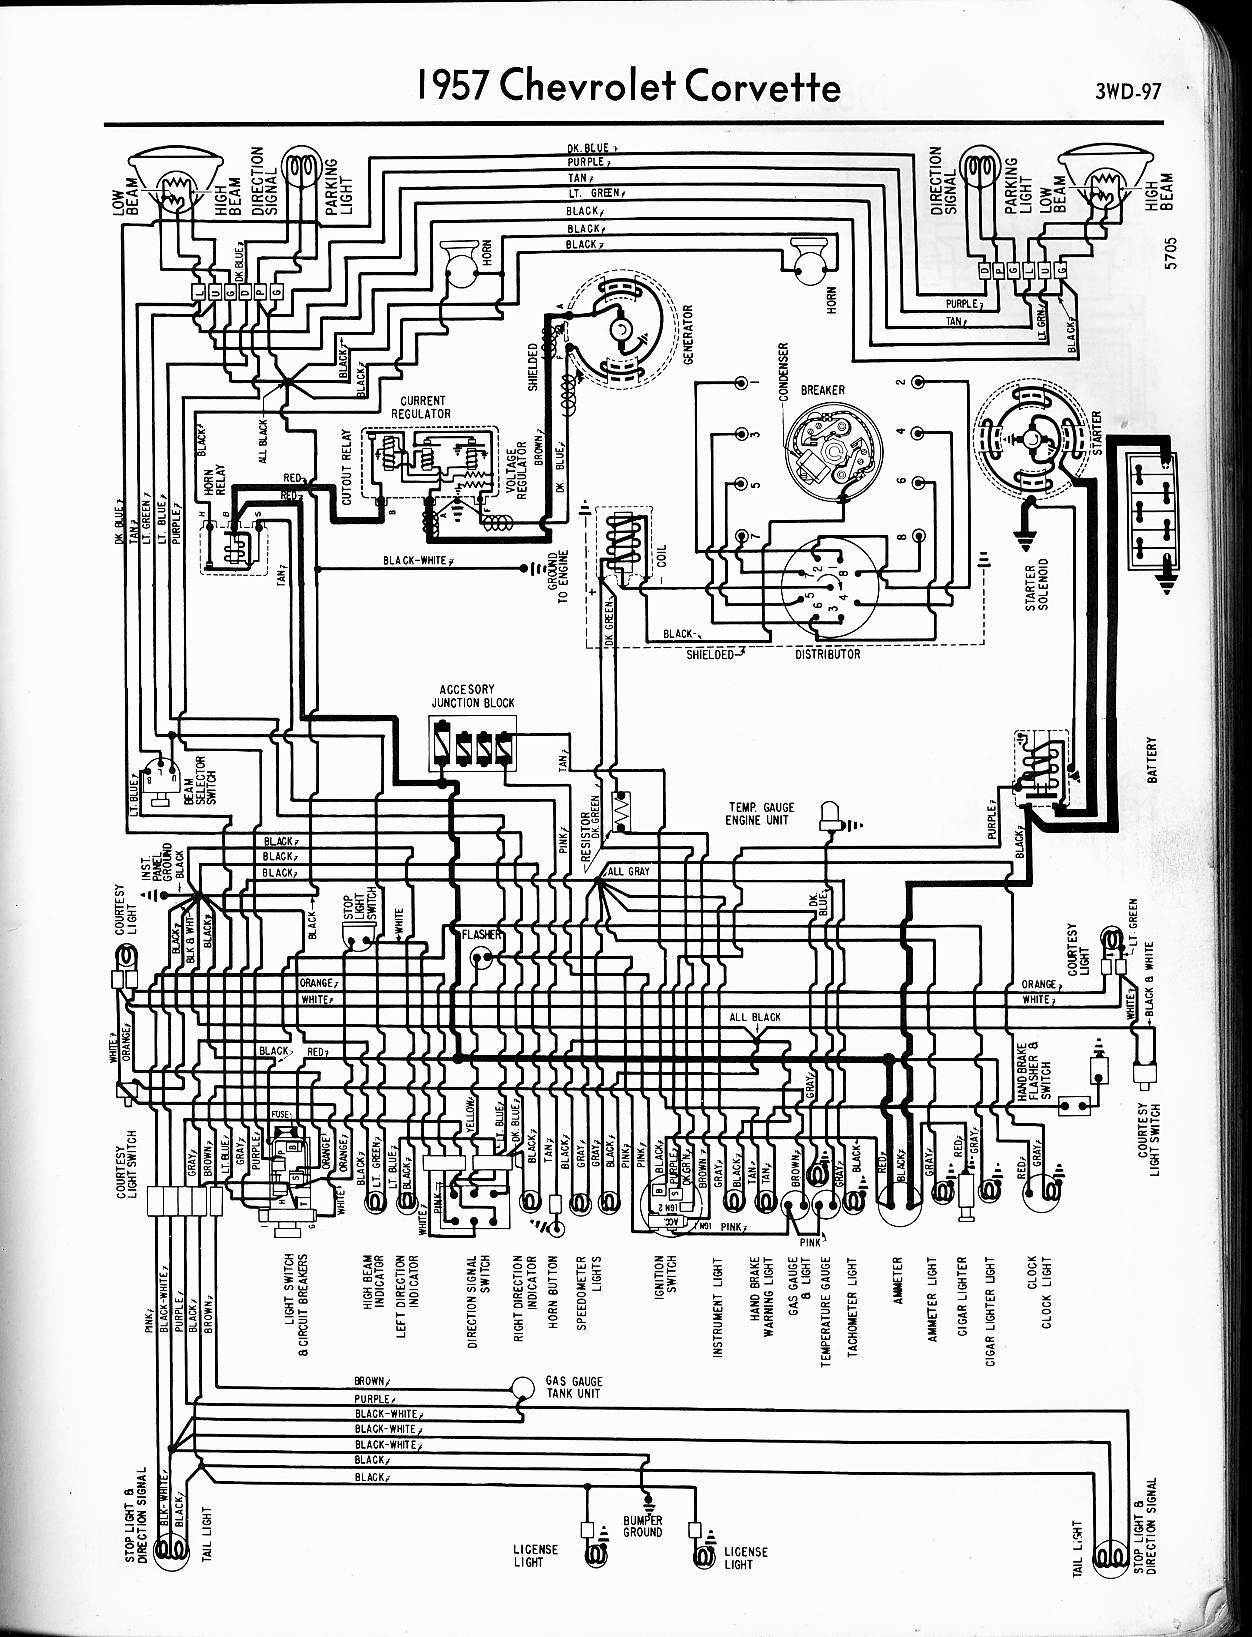 57 chevy wiring diagram wiring data diagram rh 5 meditativ wandern de